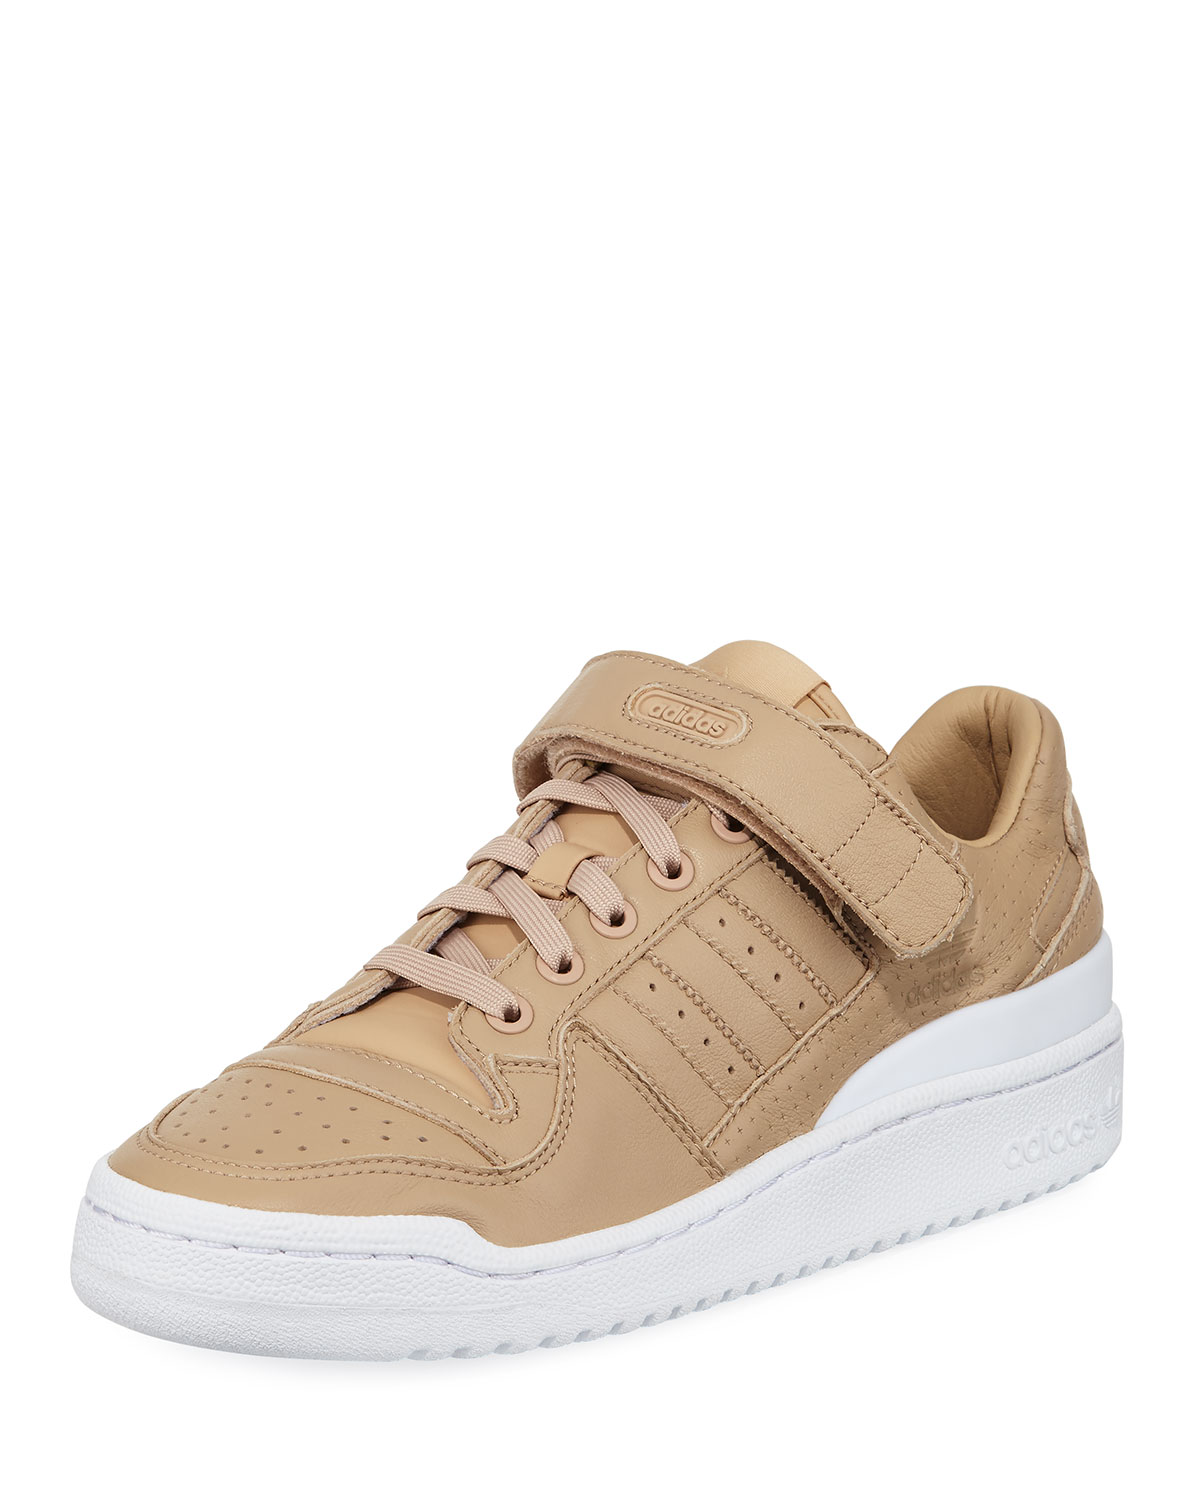 quality design 63423 4bc34 AdidasForum Low-Top Trainer Sneakers, Nude